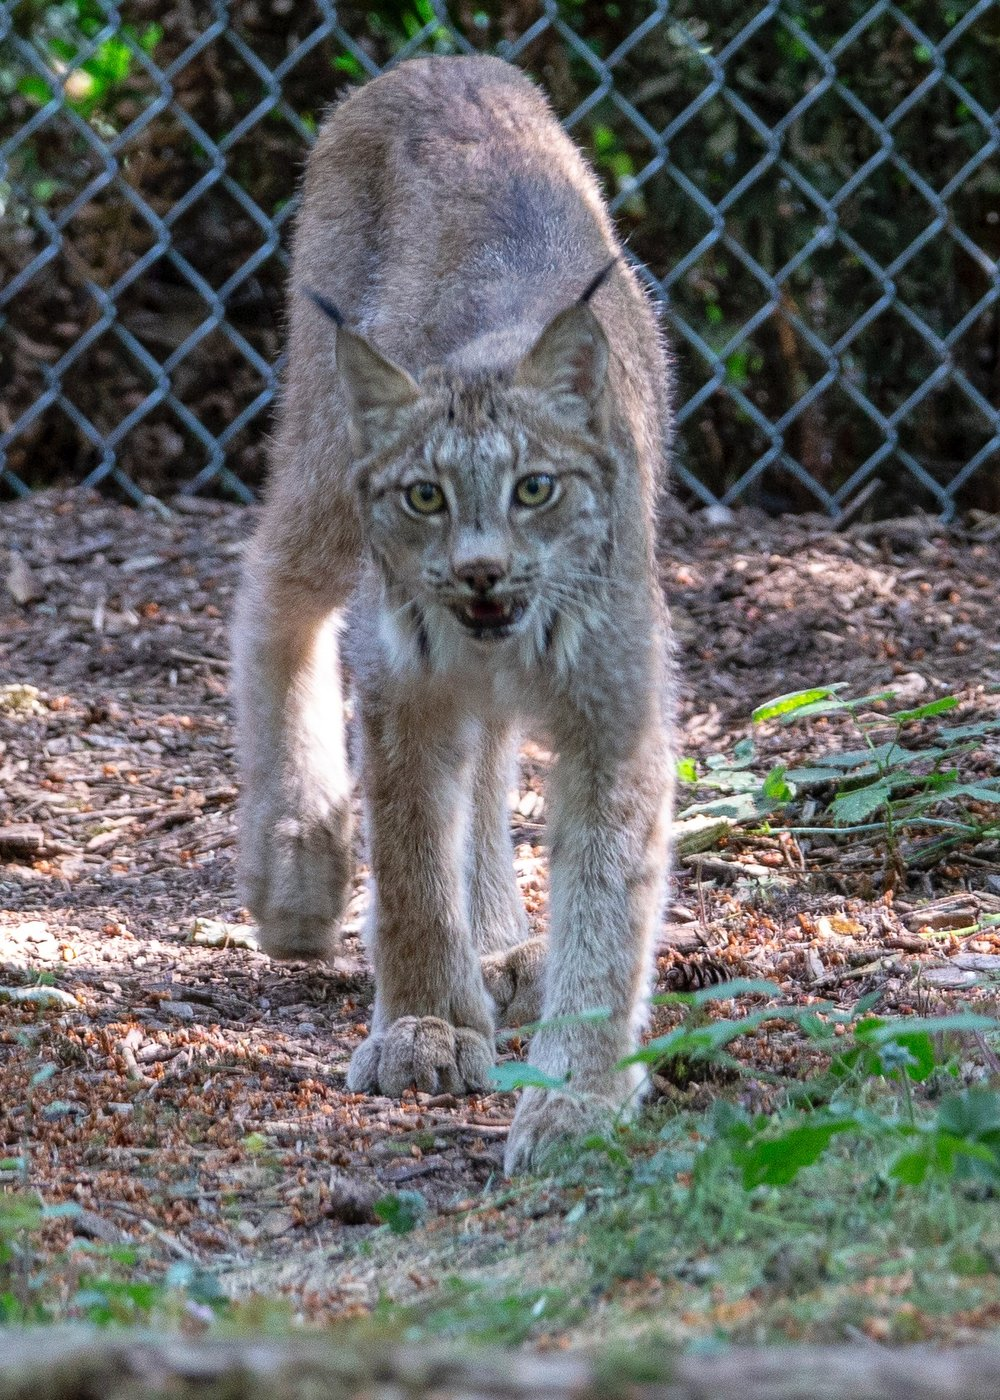 The Canadian Lynx was up and wandering about it's habitat.